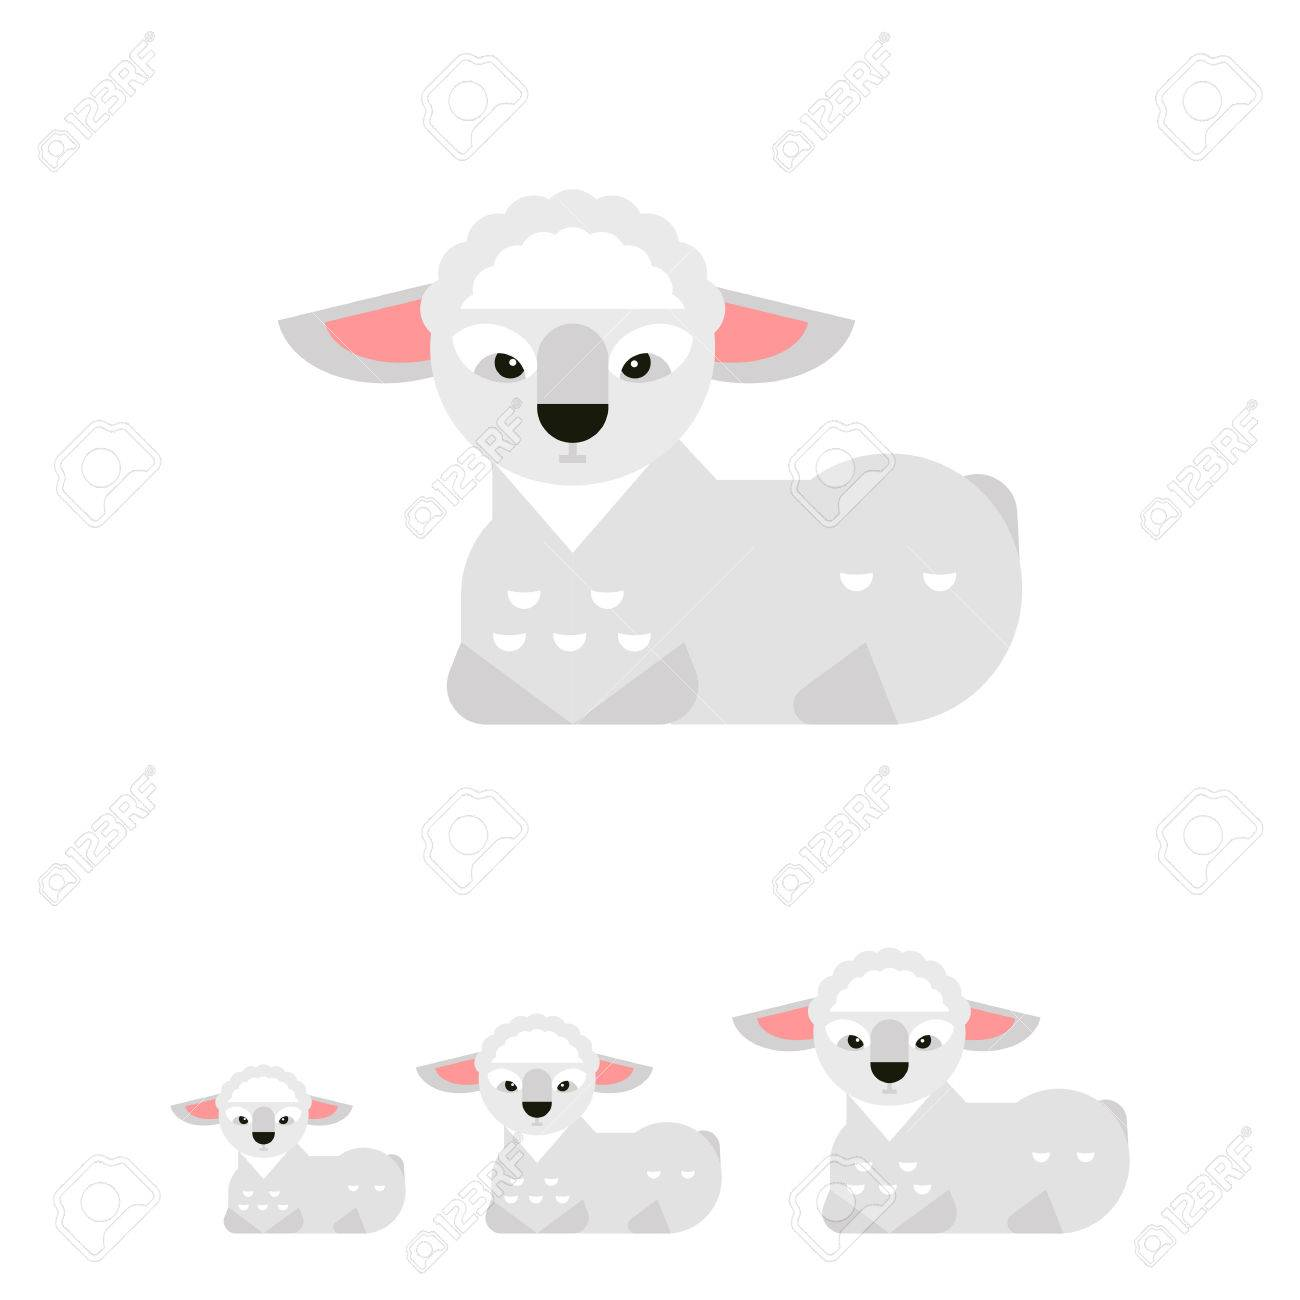 Icon Of Little Cute Cartoon White Lamb With Pink Ears And Black ...